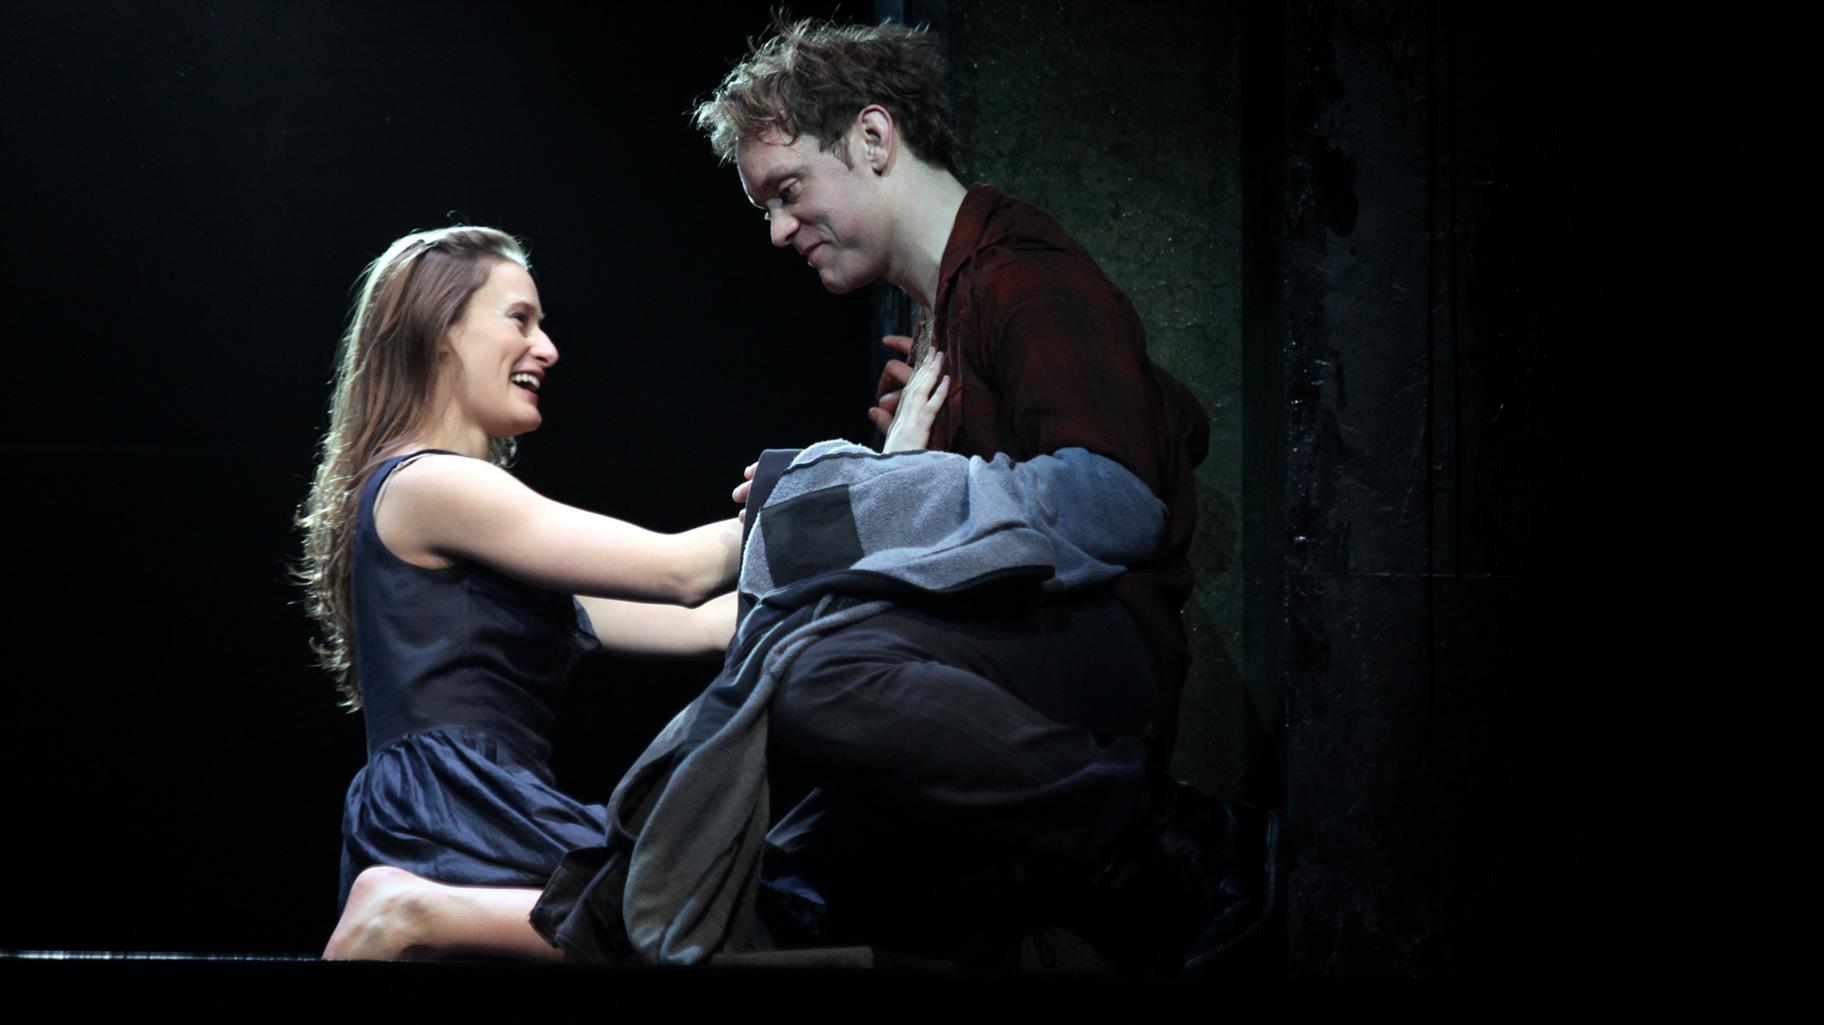 Mariah Gale as Juliet , touching Romeo (Sam Troughton) on his chest, smiling